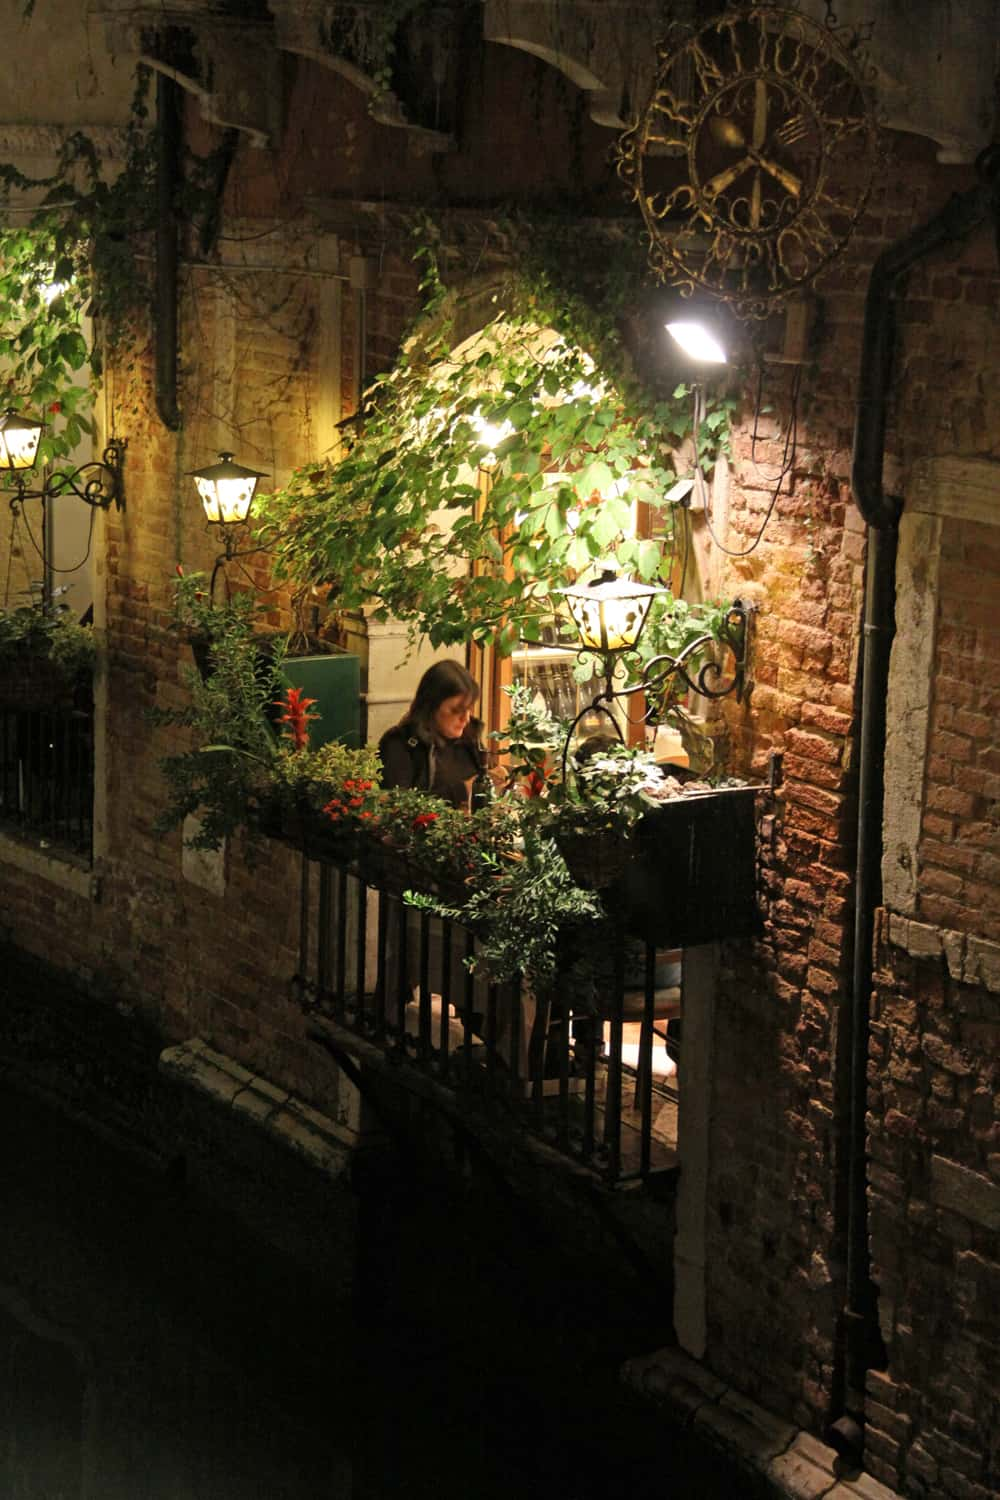 Venice cafe at night